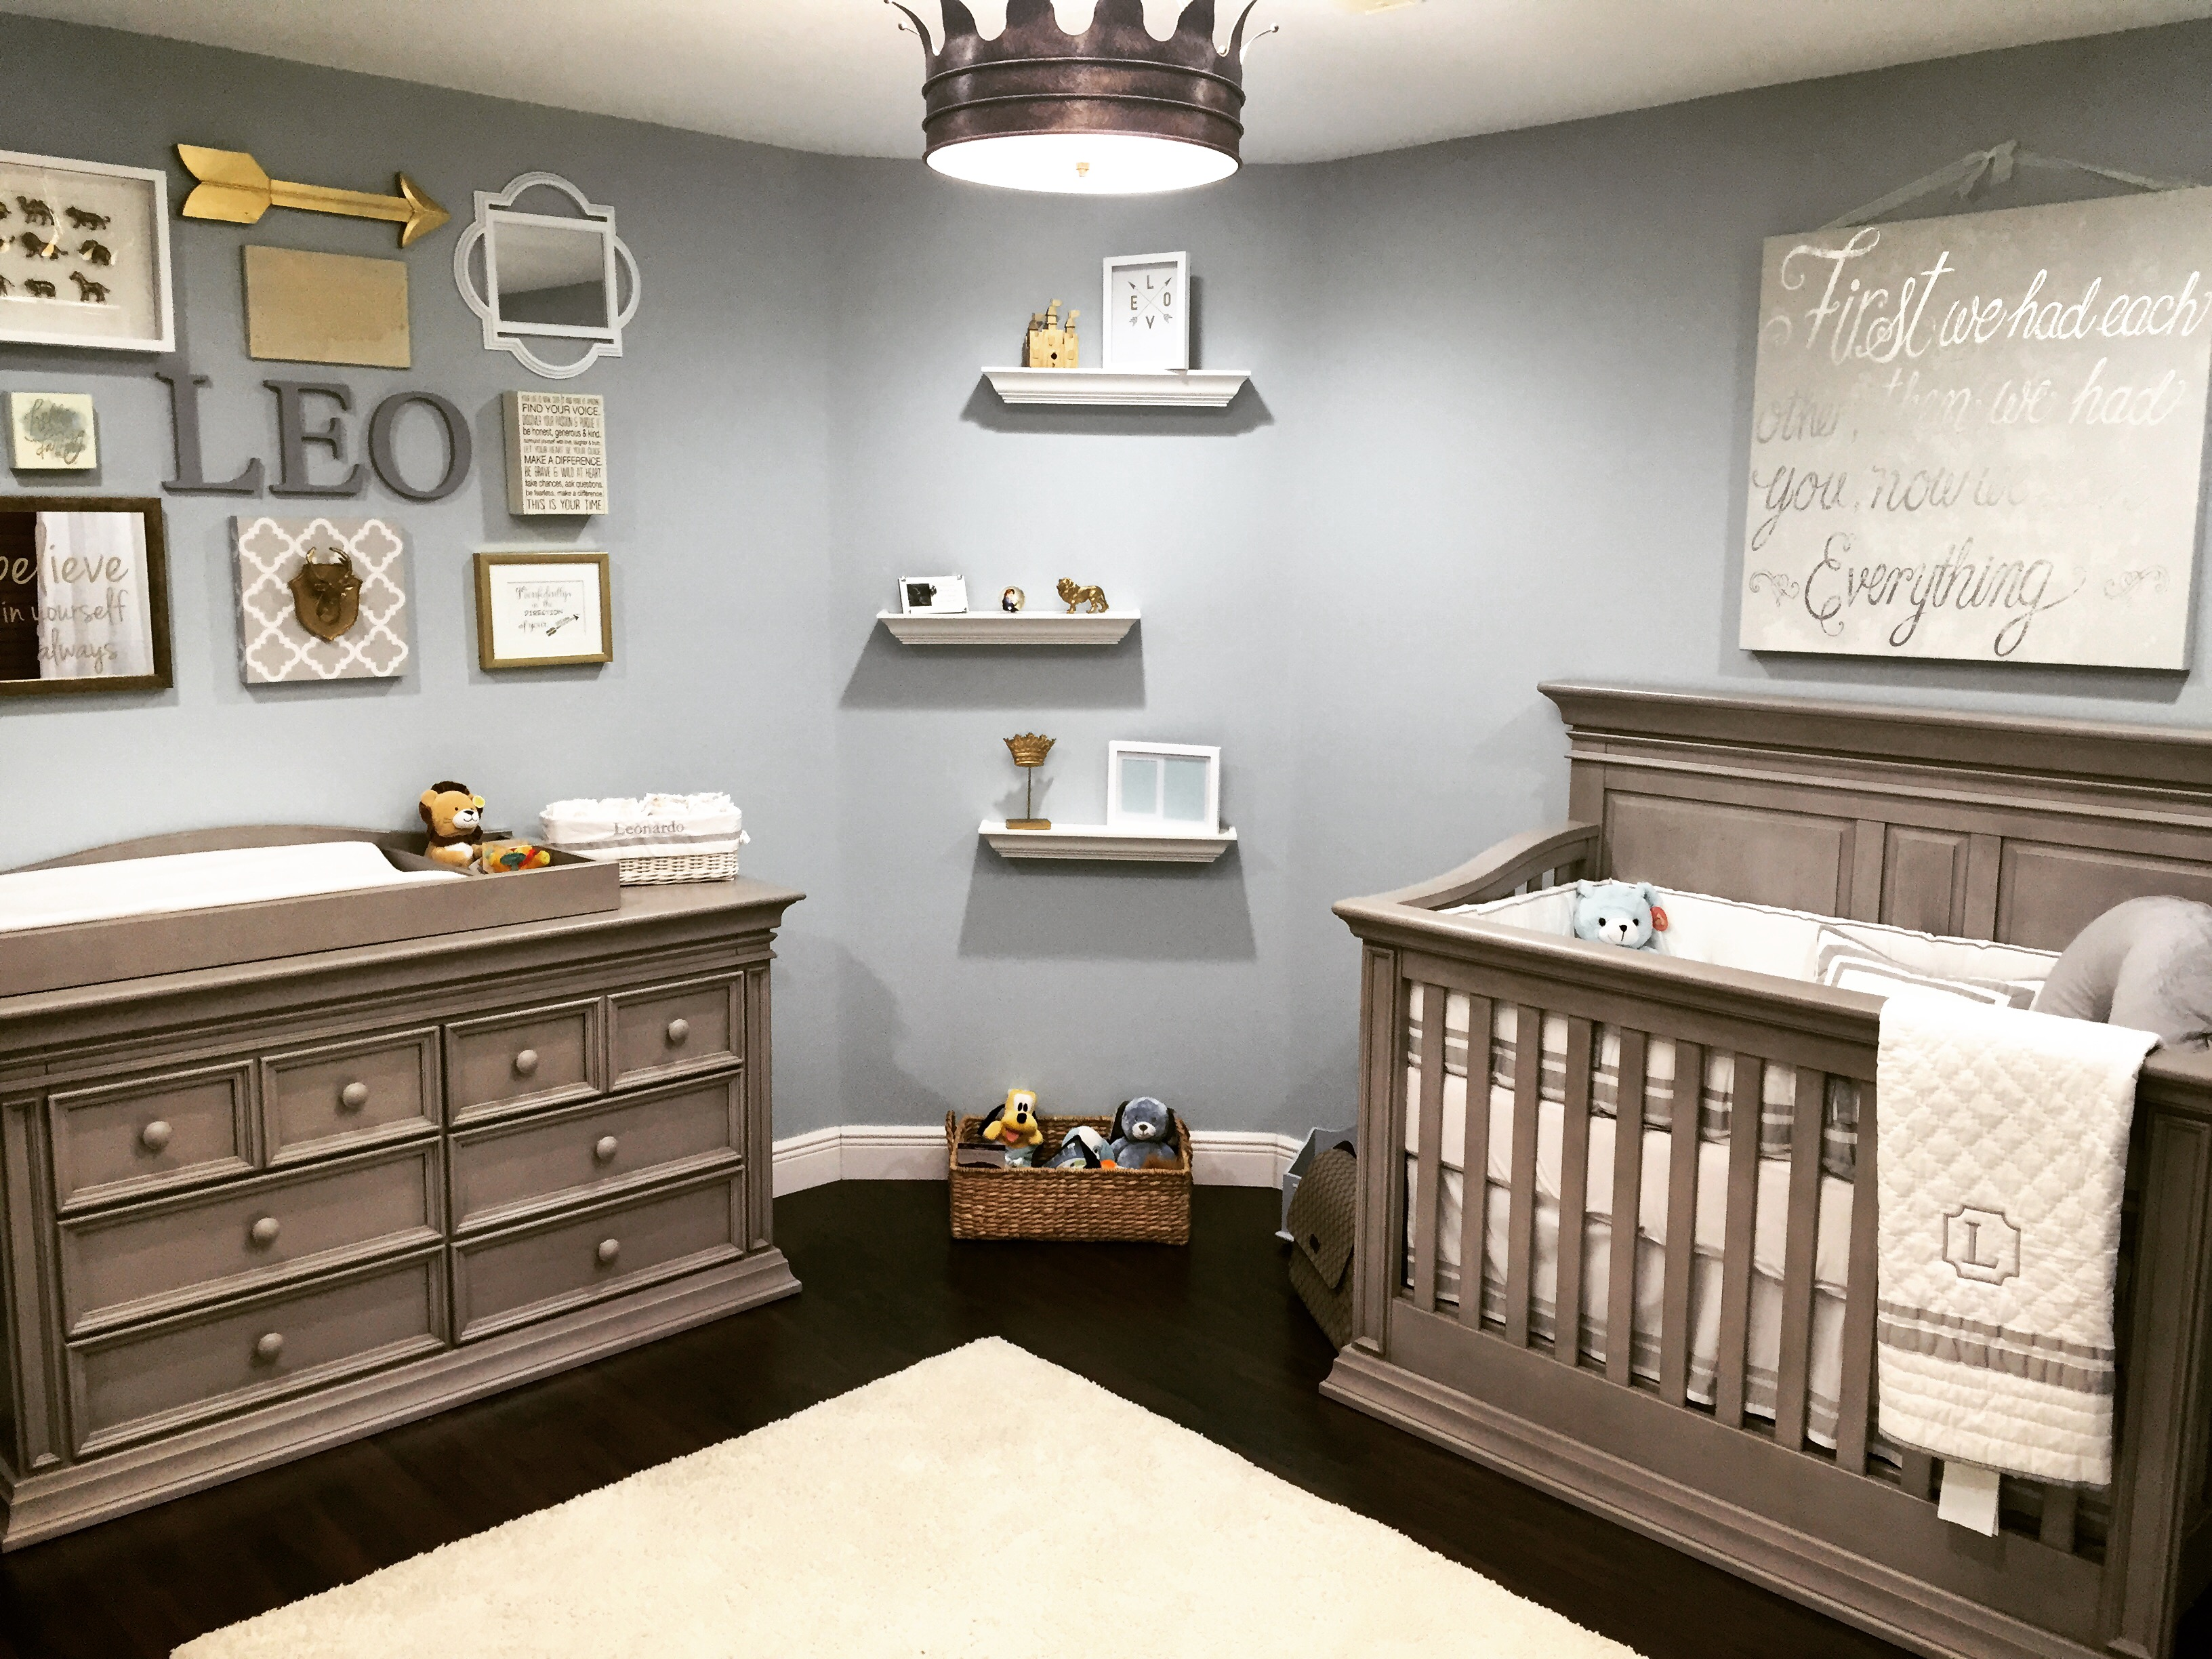 Little Leo's Nursery Fit For A King